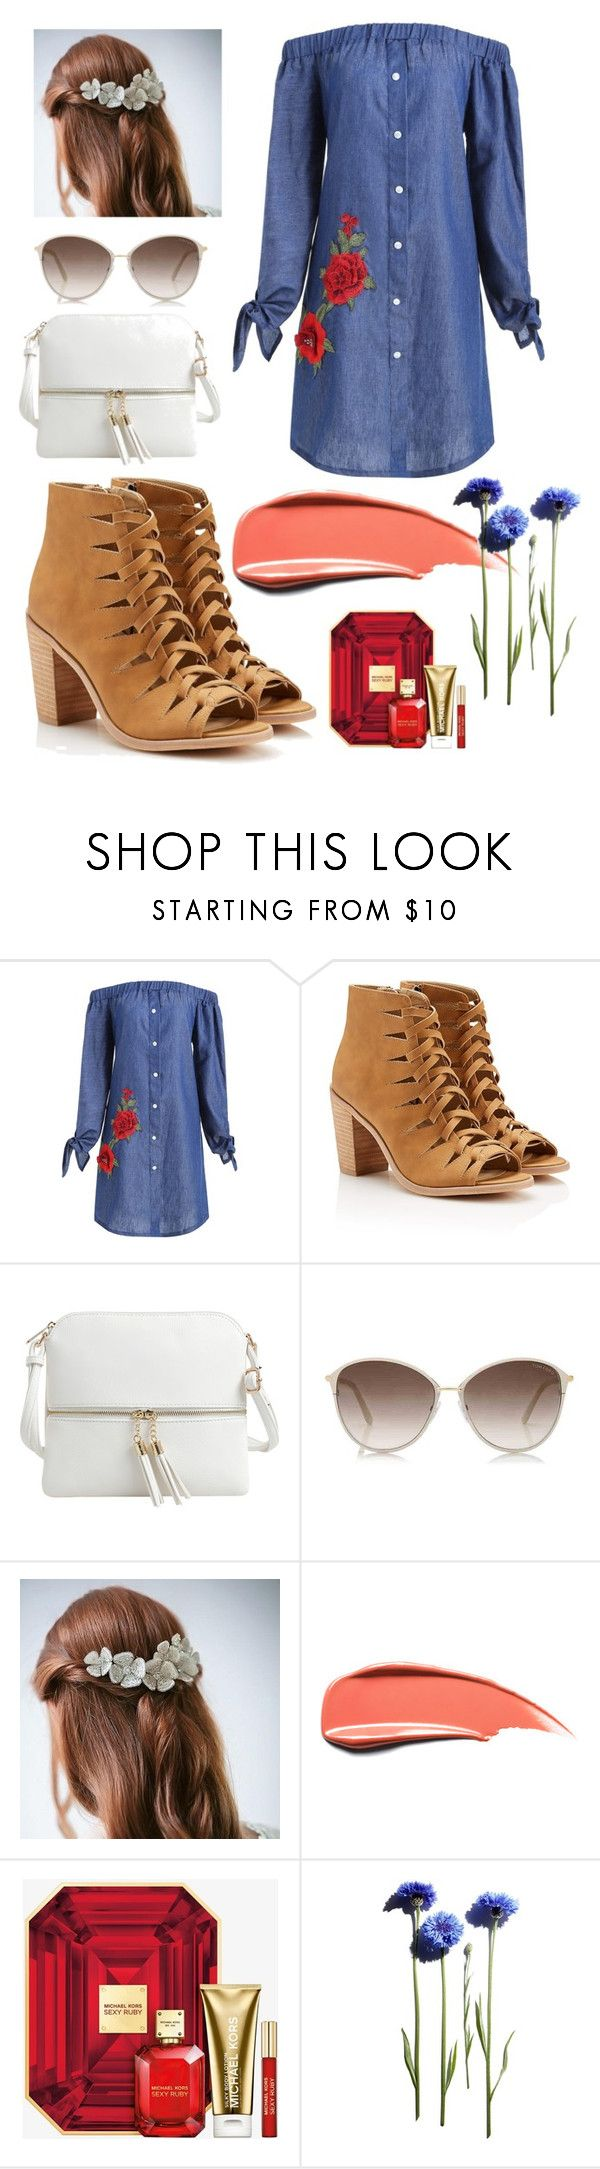 """Untitled #32"" by chalotteleah on Polyvore featuring Epic Chic, Tom Ford and Michael Kors"